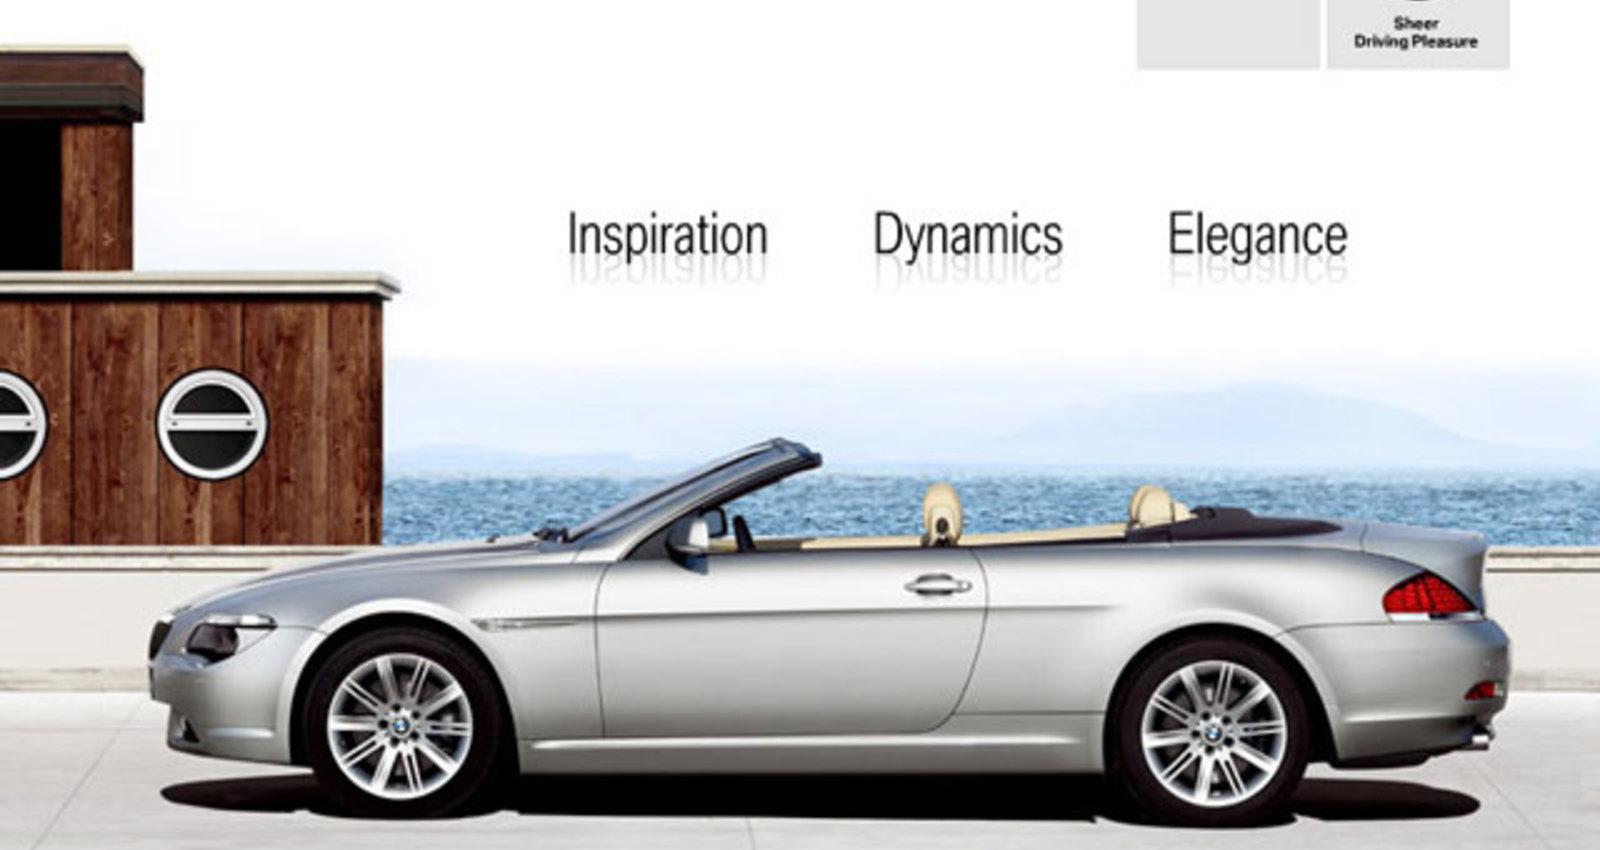 The new BMW 6 Series Convertible. Inspiration. Dynamics. Elegance.